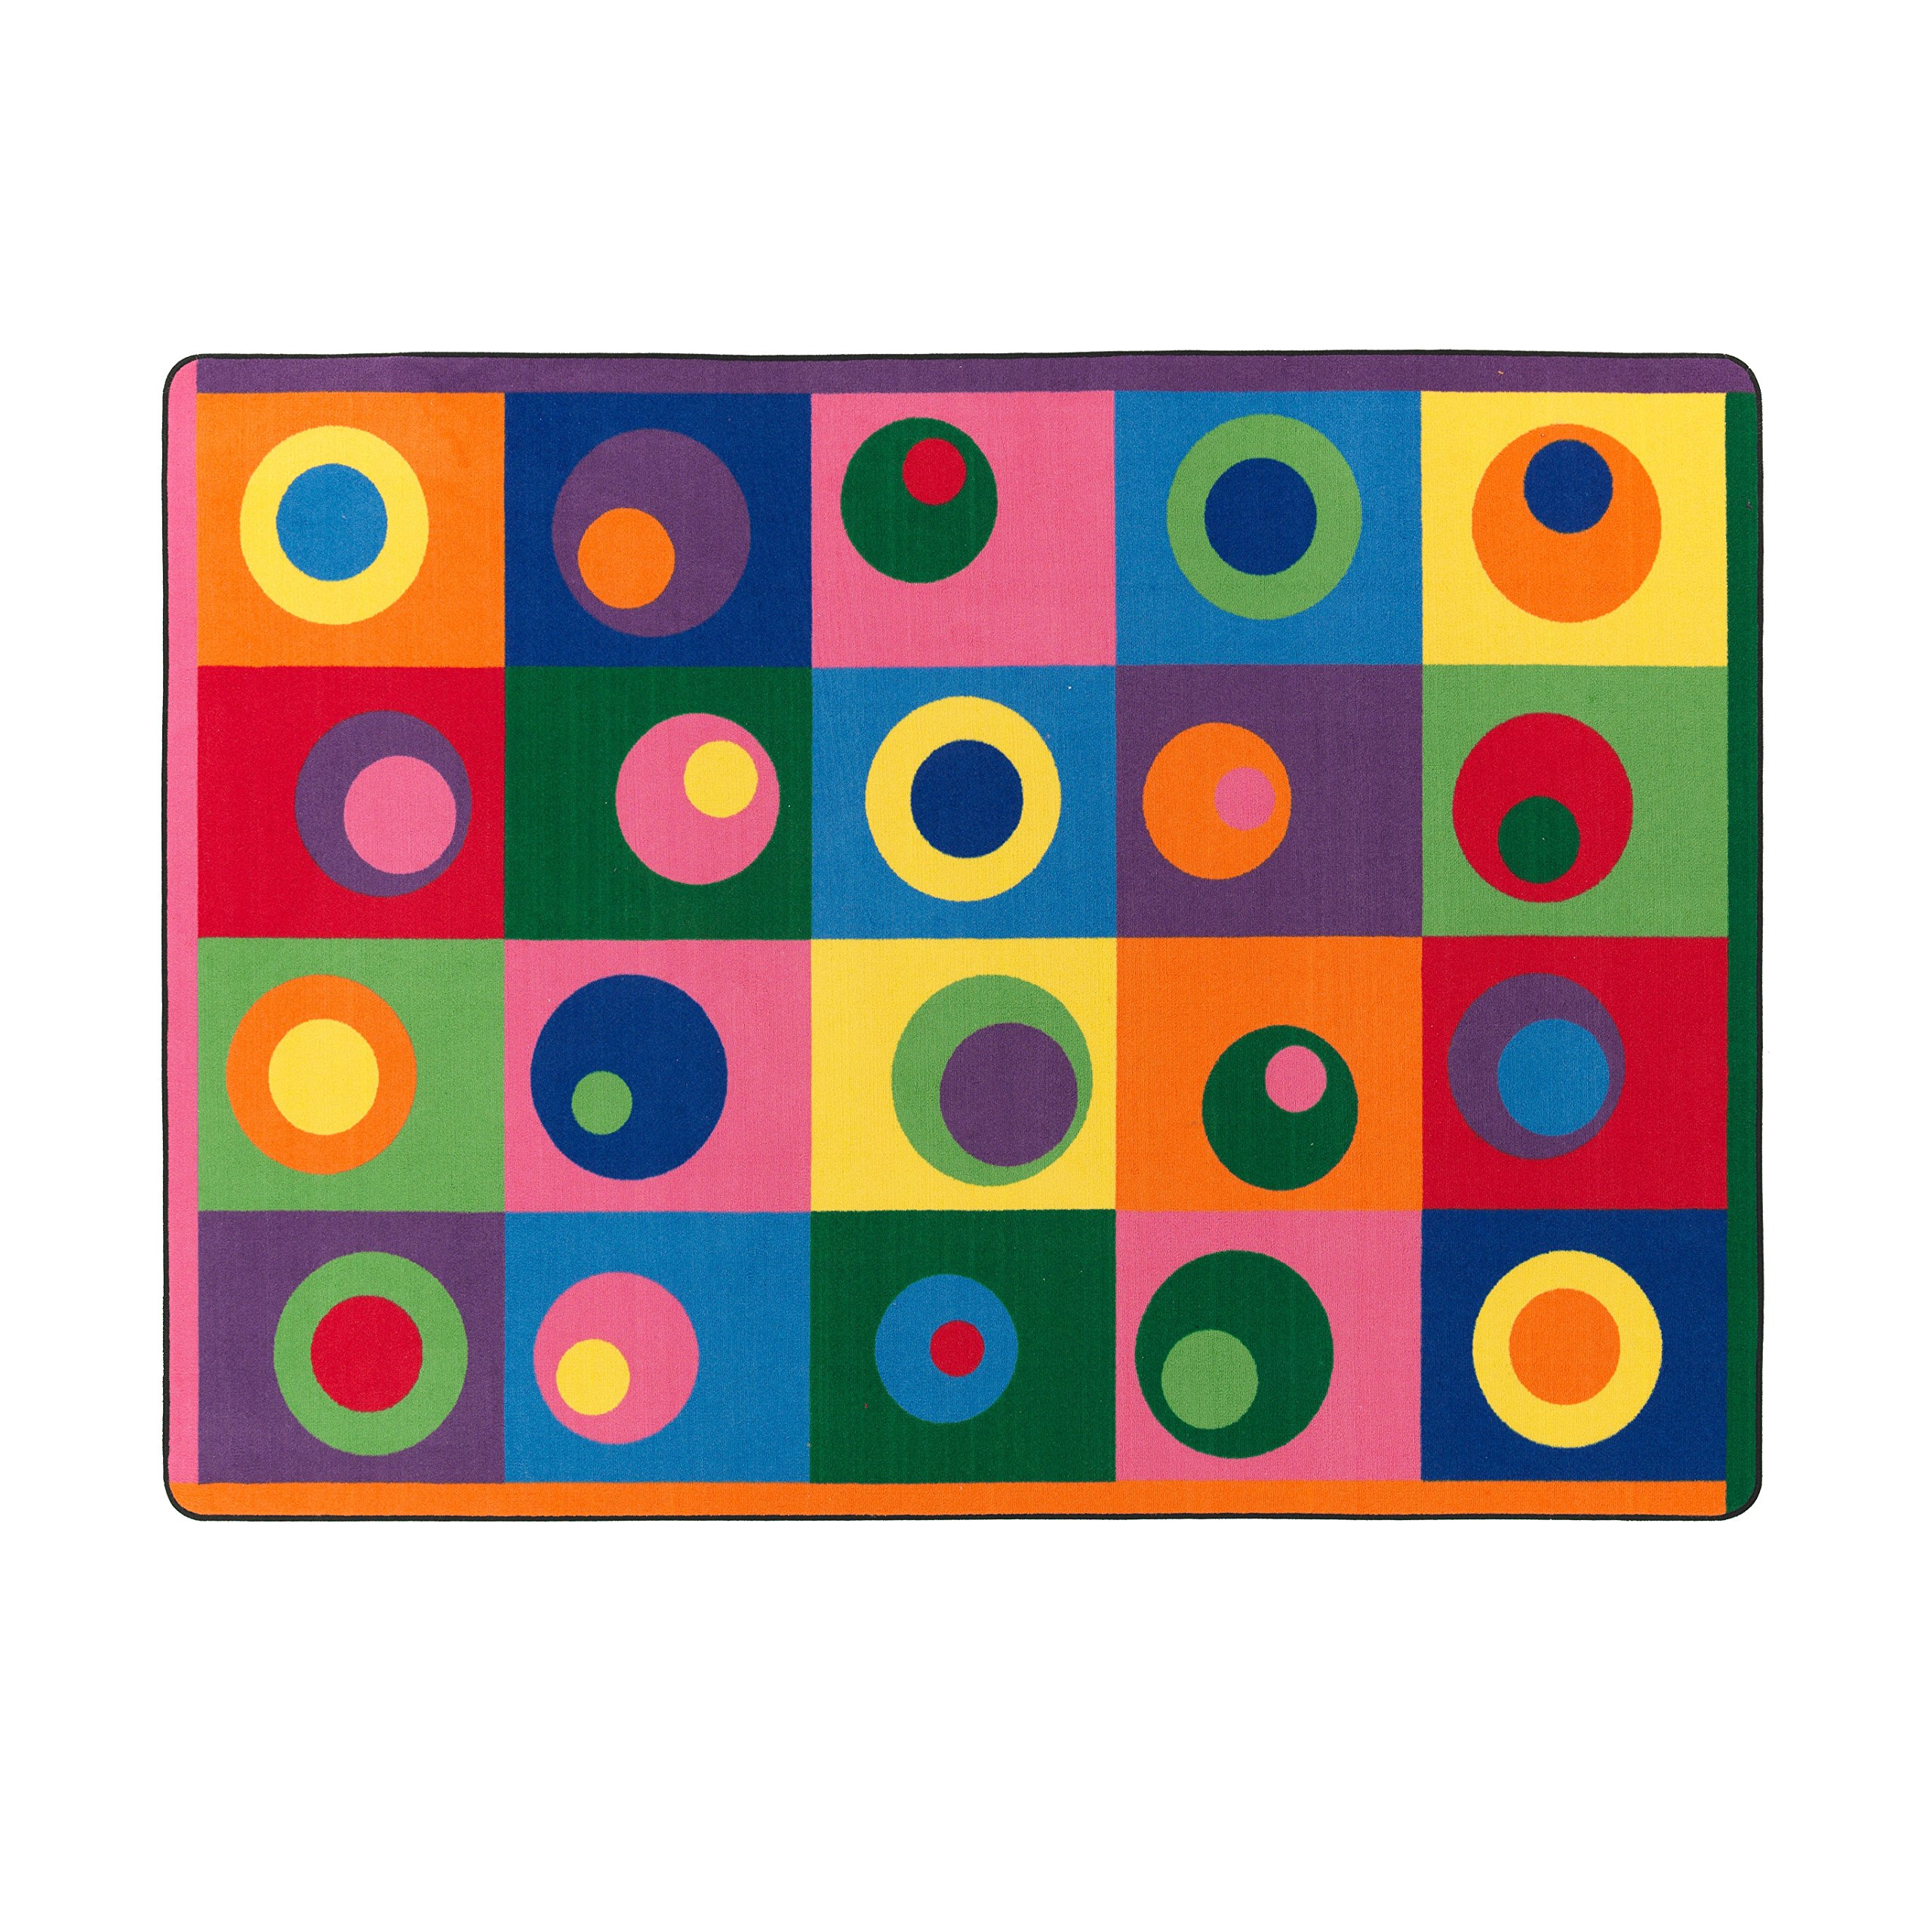 Flagship Carpets FE119-32A Multi Silly Circles Seating Carpet, Seats 20, A Bright Fun Design for Kids of All Ages, Children's Classroom Educational Carpet, Kids School, 5'10'' x 8'4''